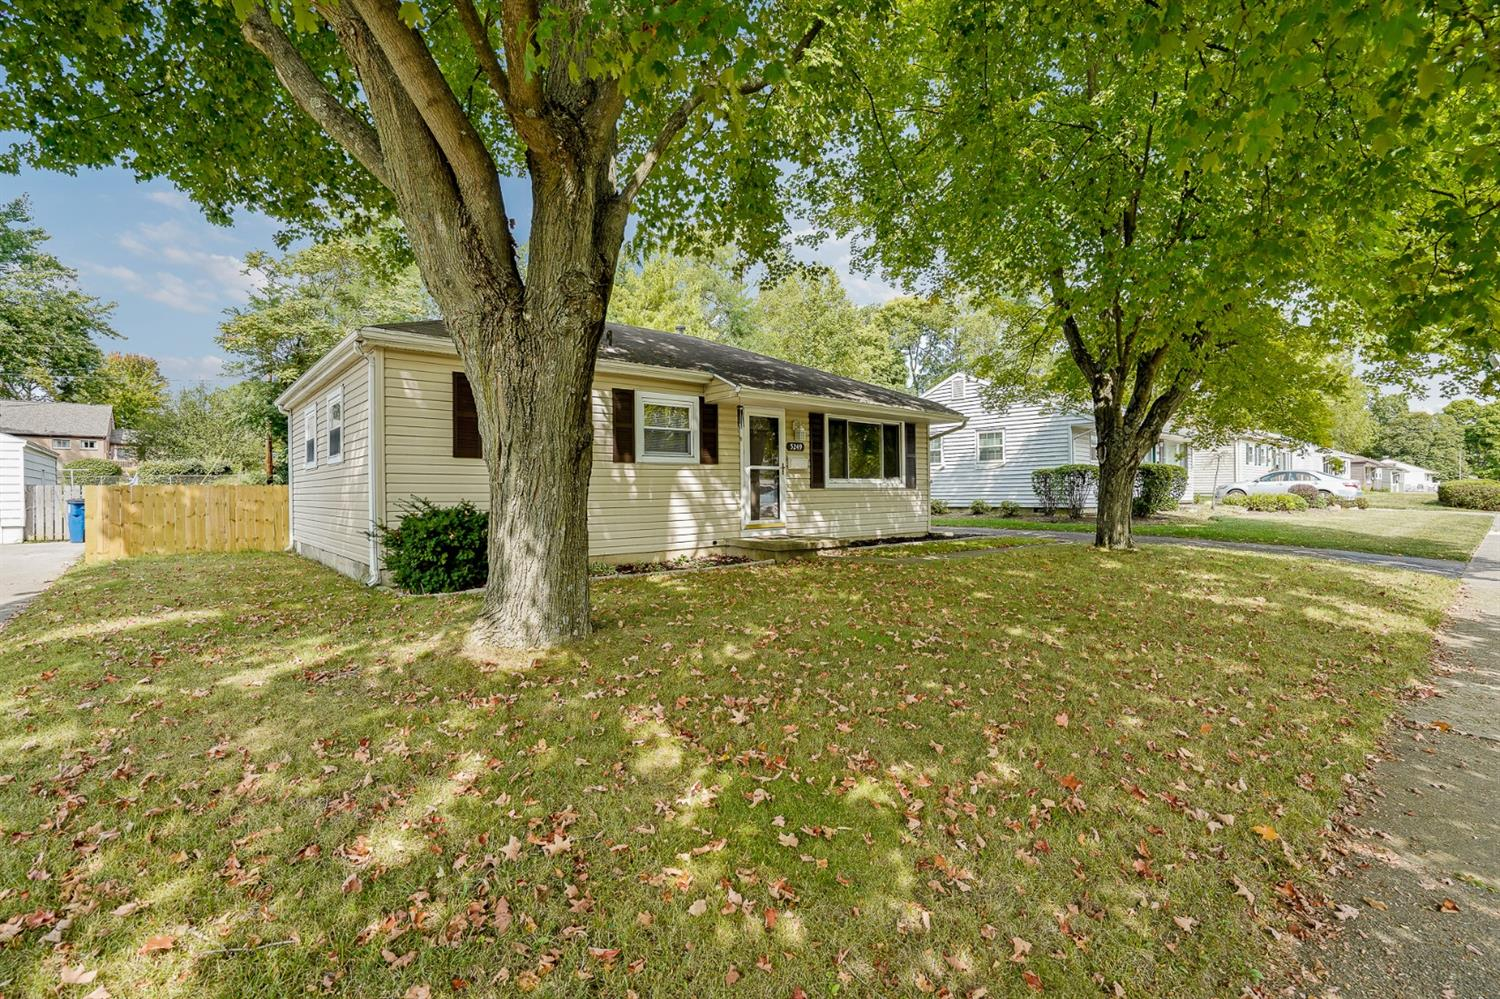 Photo 2 for 5249 Woodbine Ave Montgomery Co., OH 45432